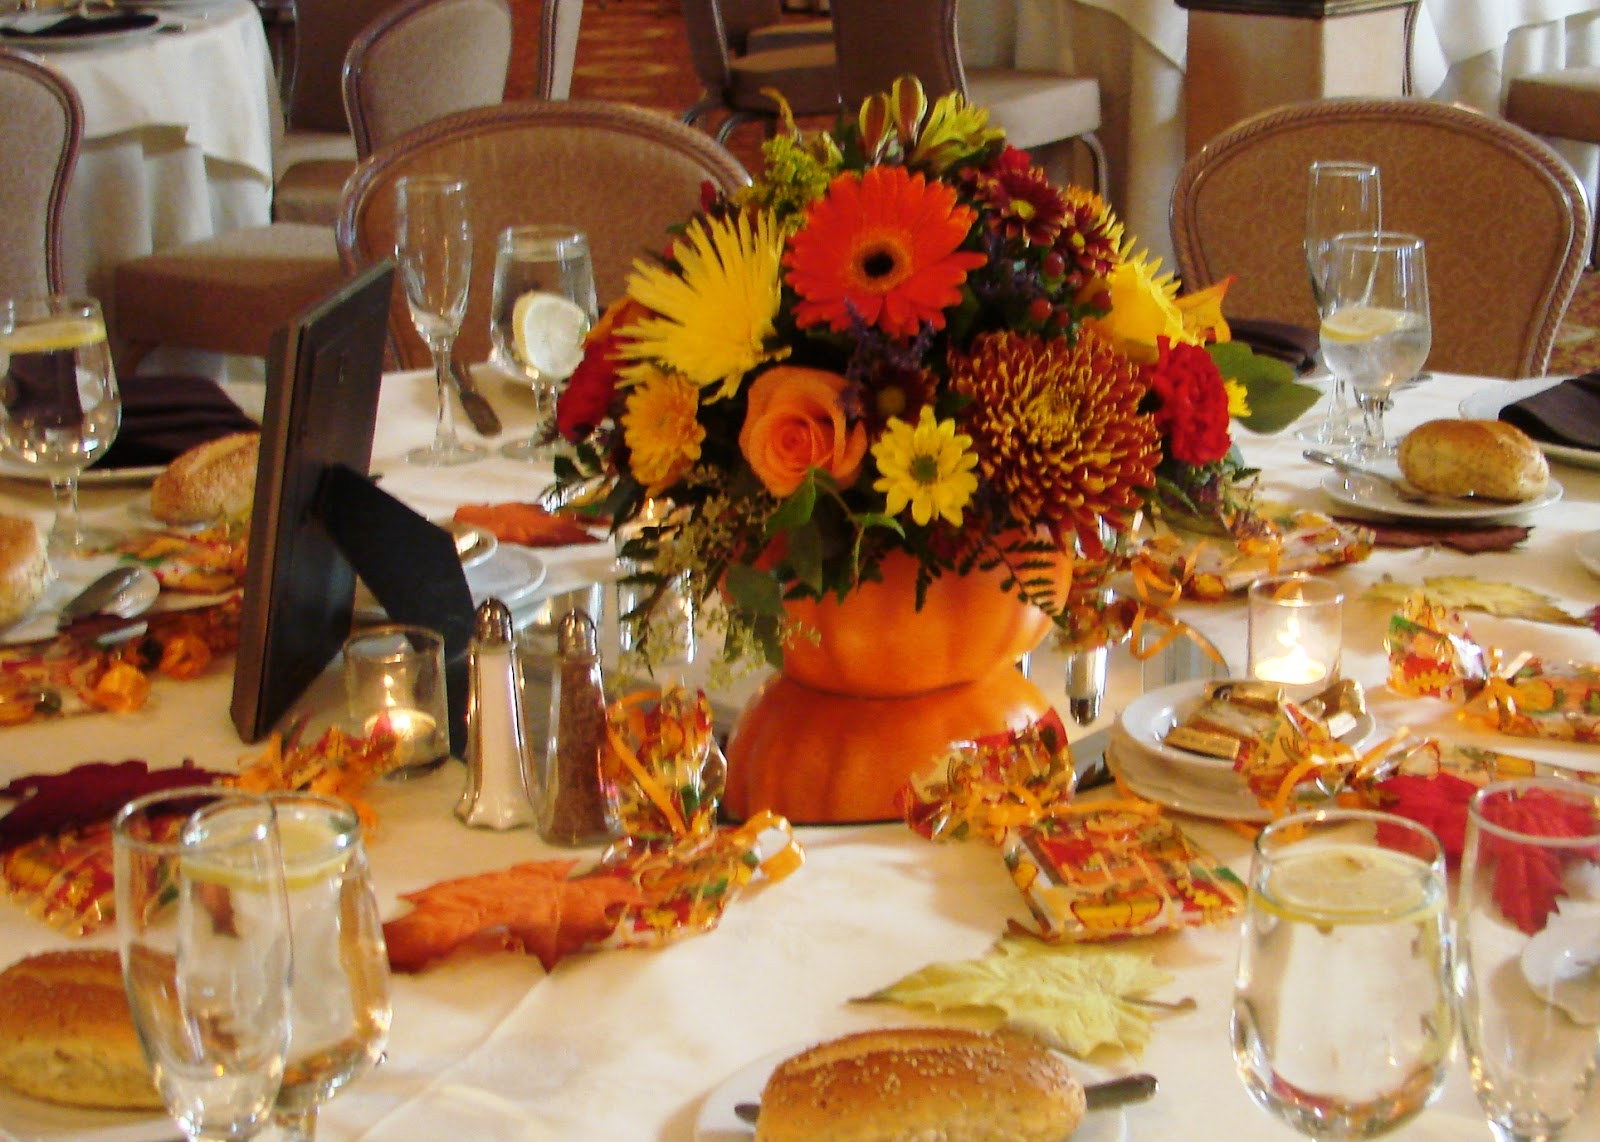 +Themed+Fall+Wedding,+wedding+centerpieces,+fall+wedding+ideas.jpg